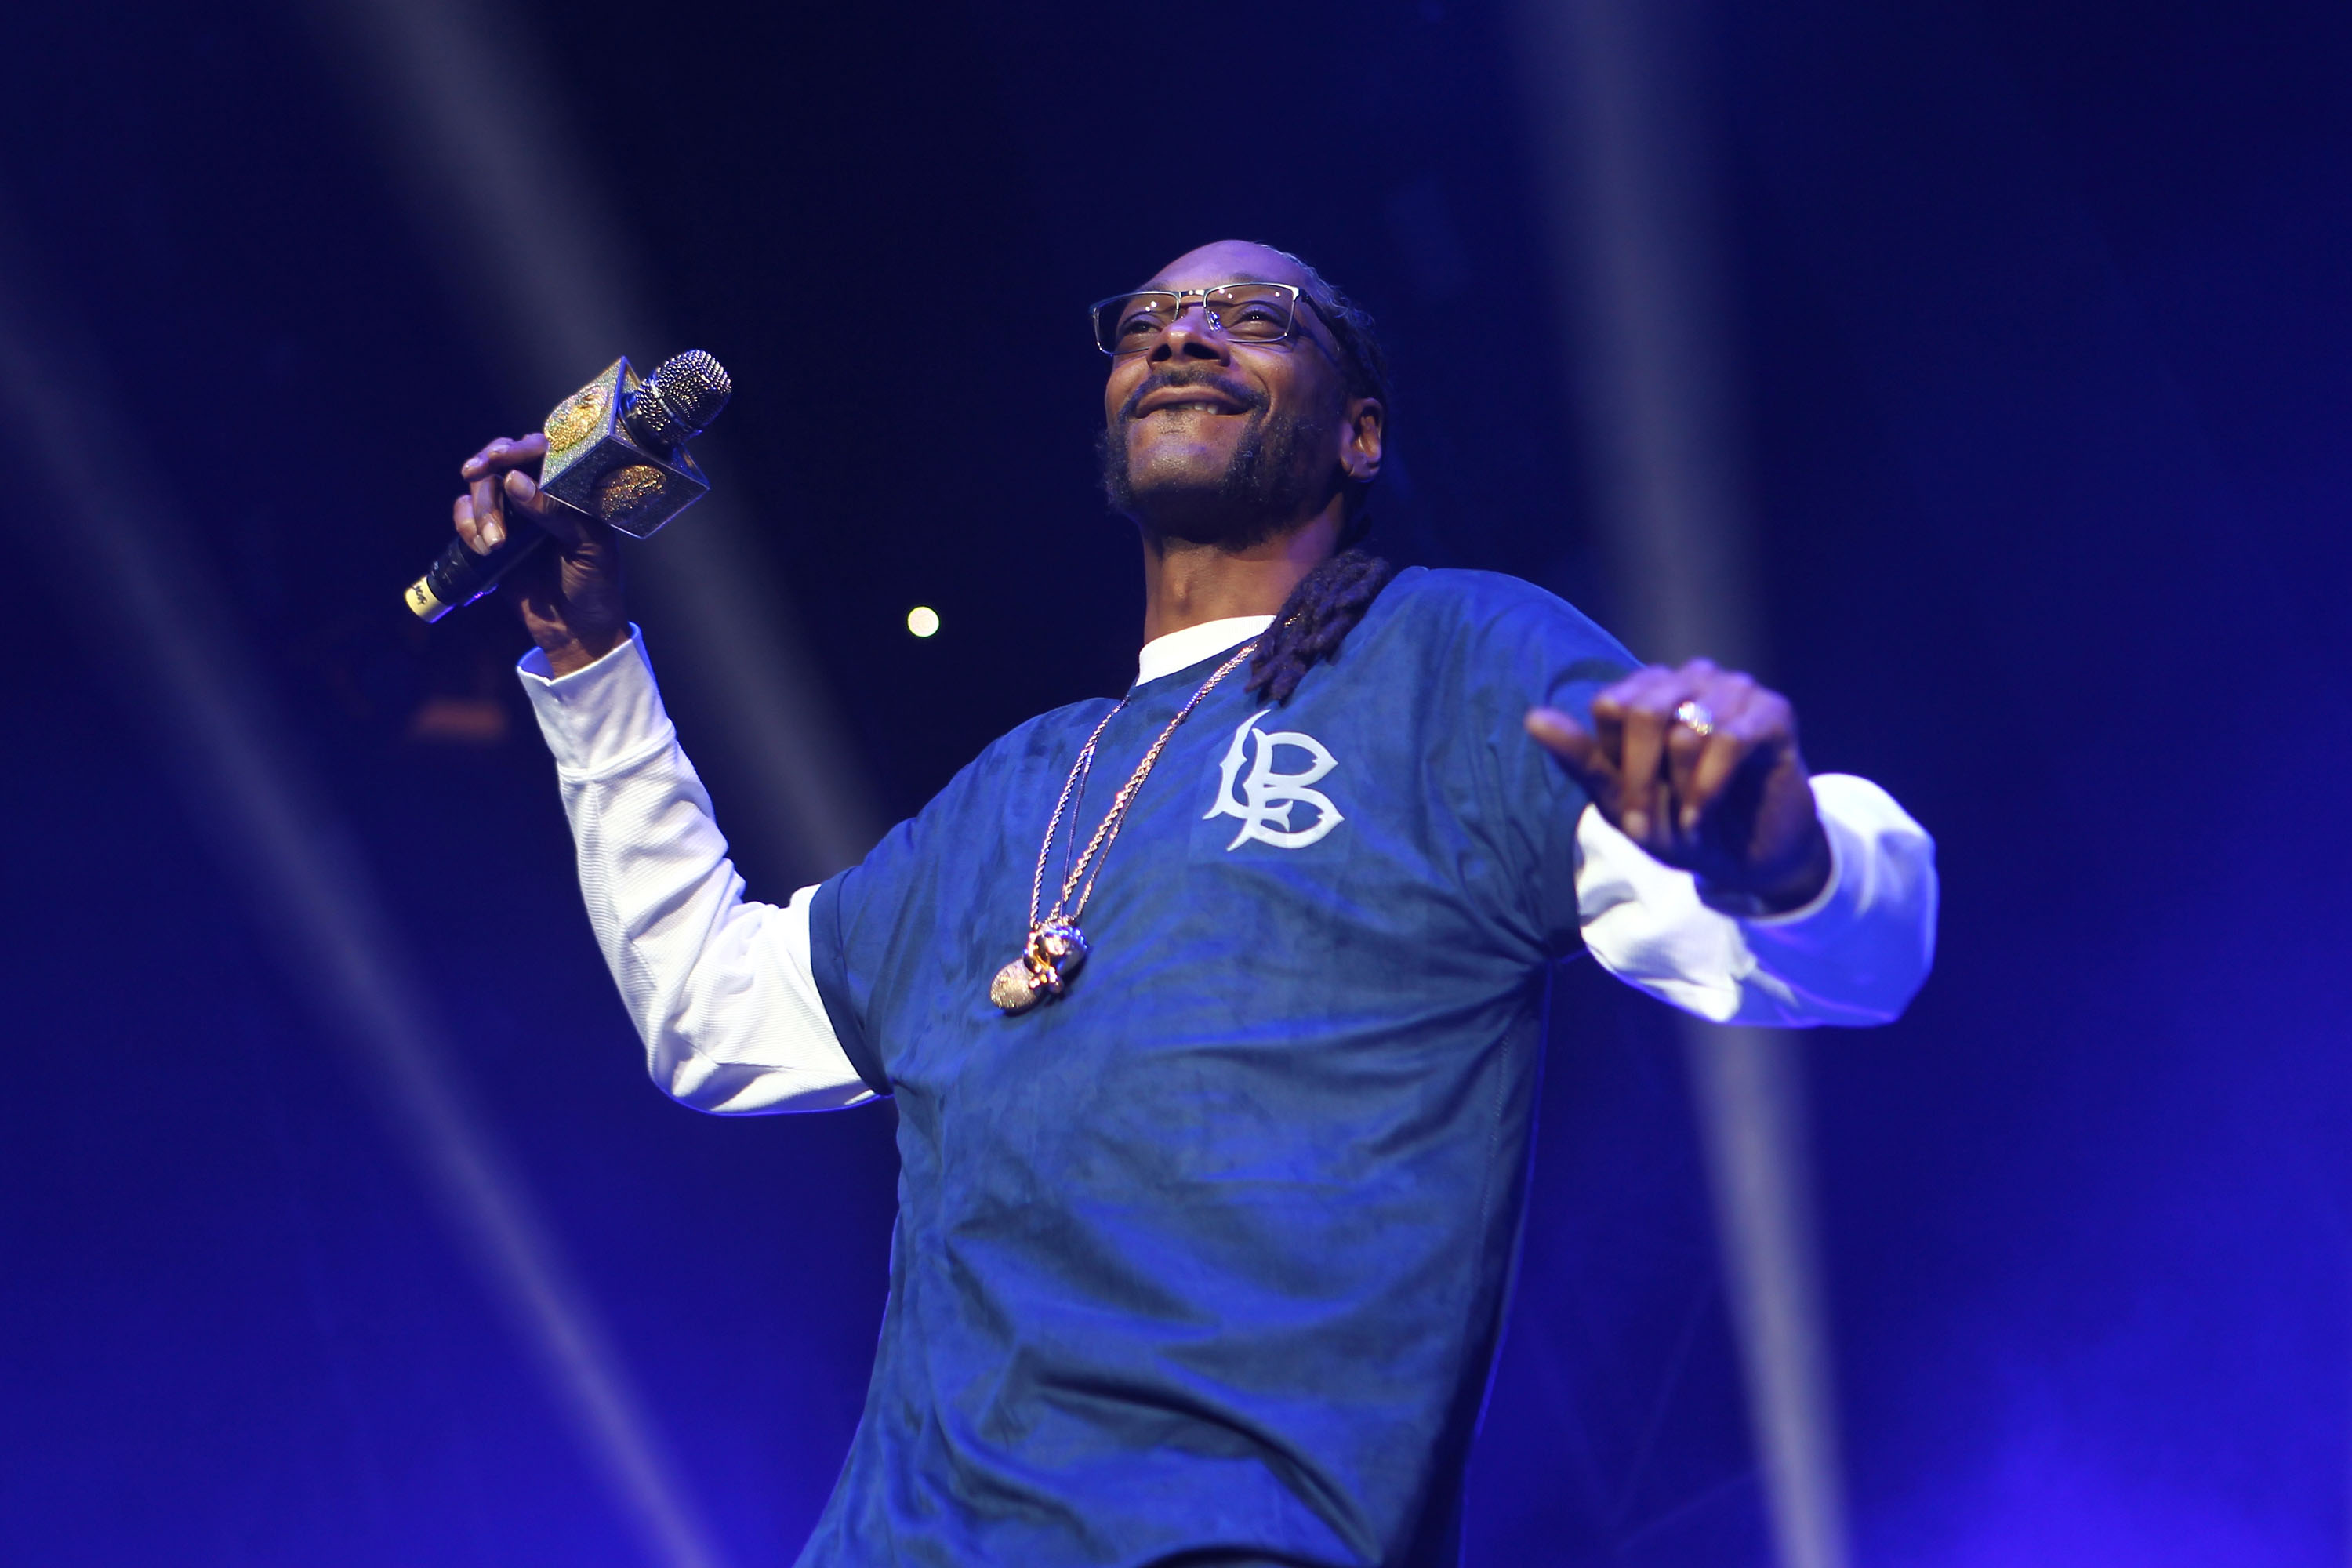 Snoop Dogg performed at the Mega 96.3 FM Calibash 2016 at Staples Center on January 24, 2016 in Los Angeles, California.